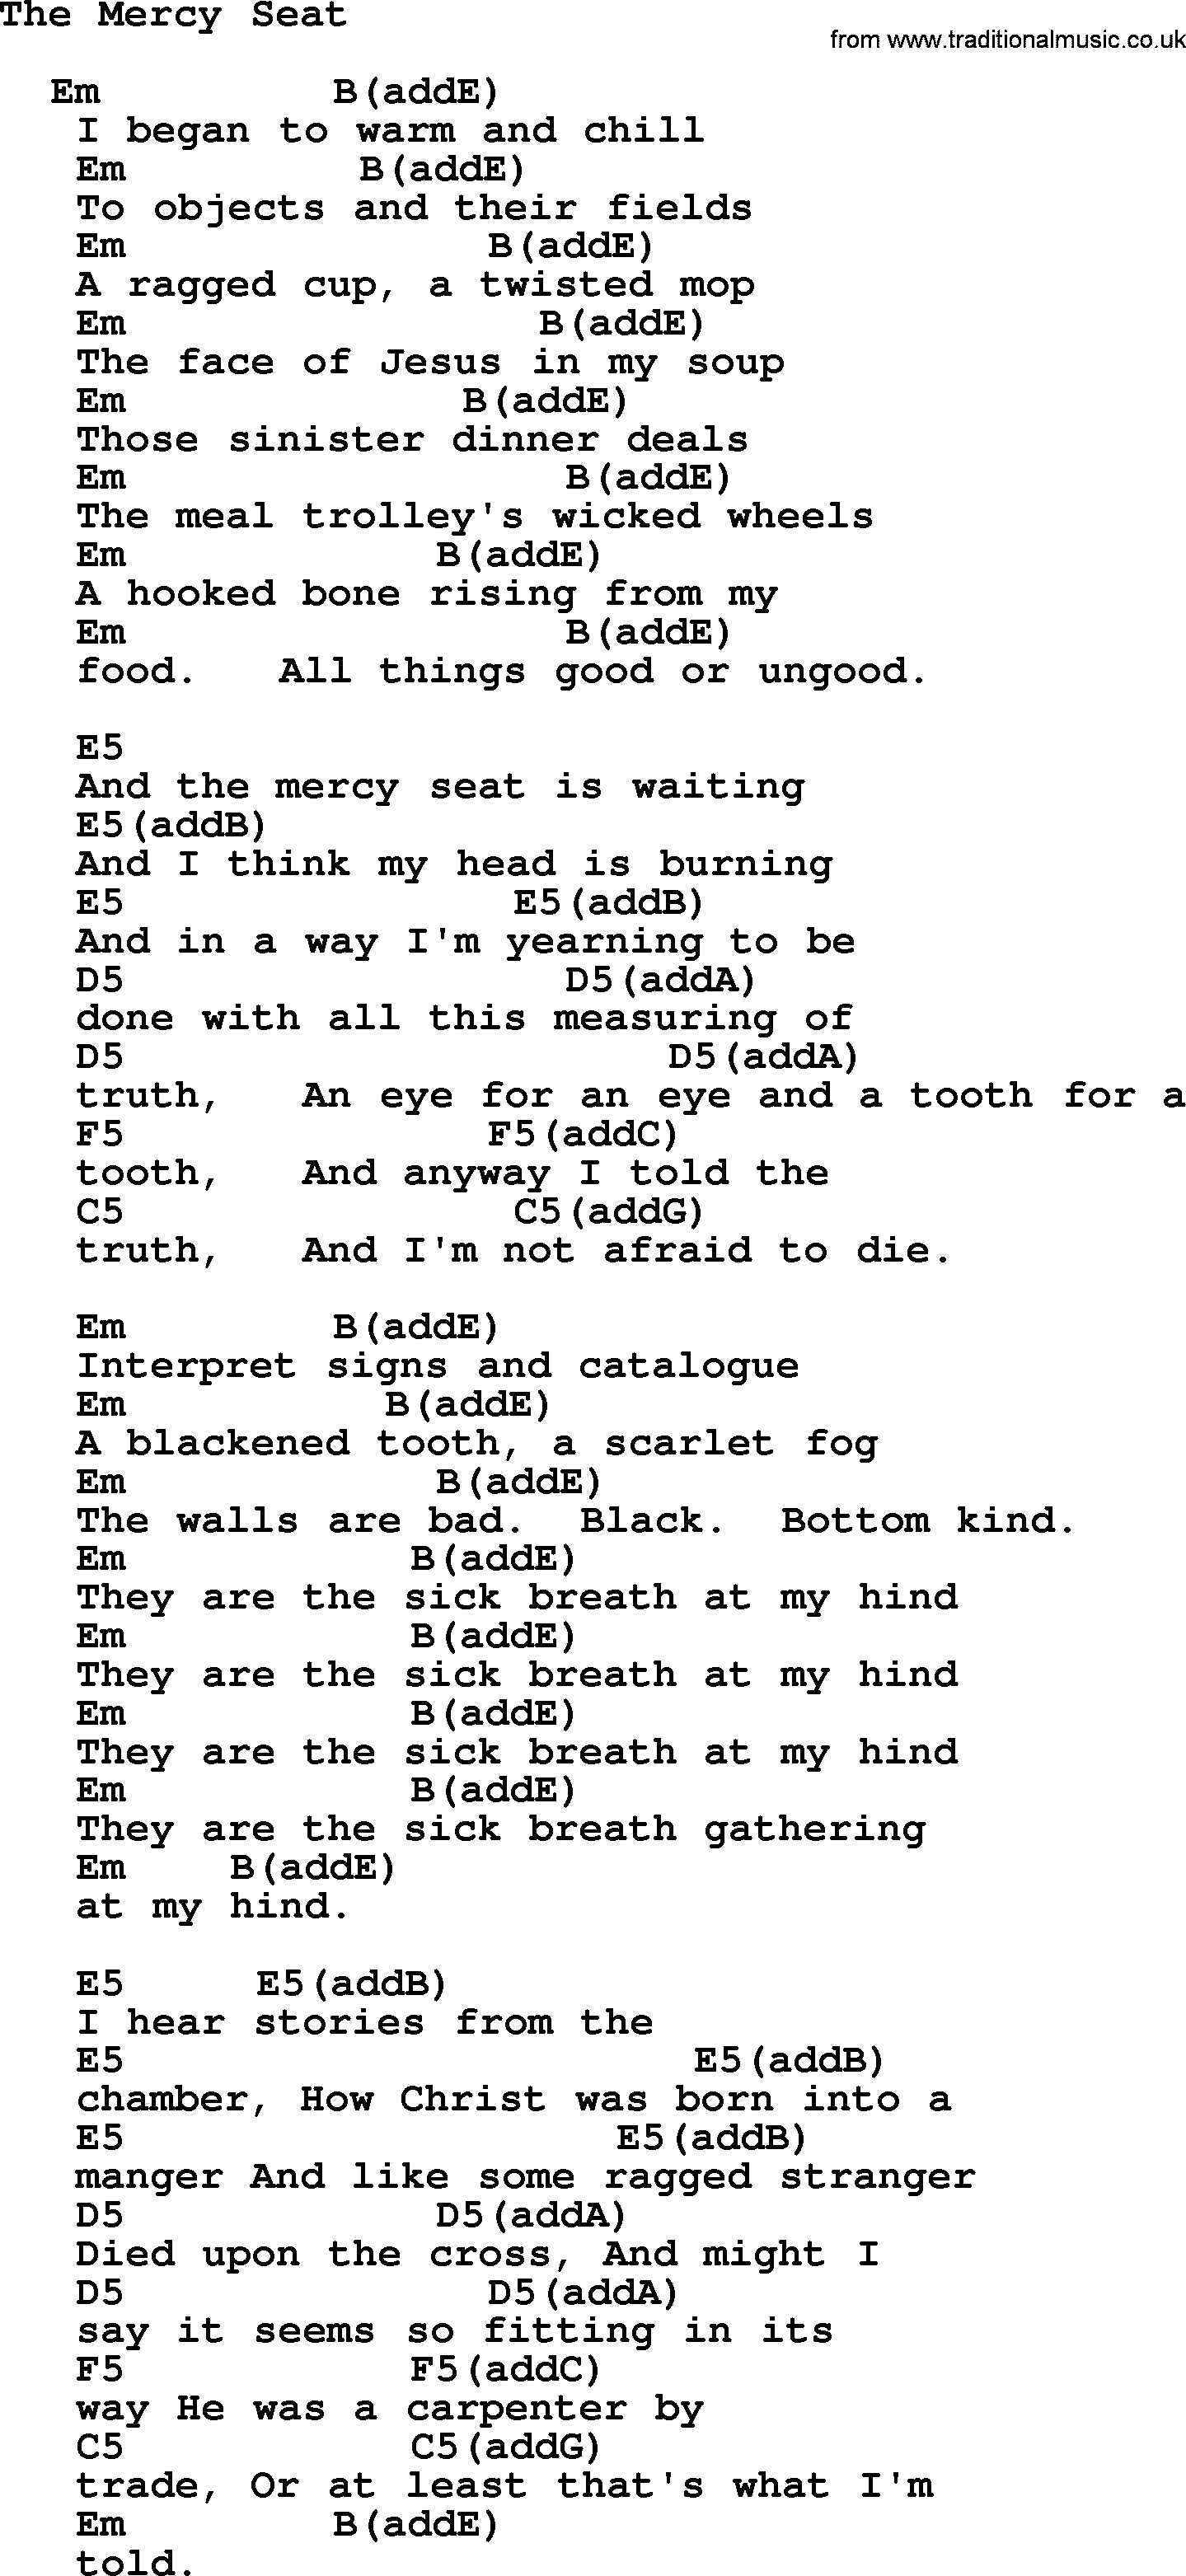 Johnny Cash Song The Mercy Seat Lyrics And Chords